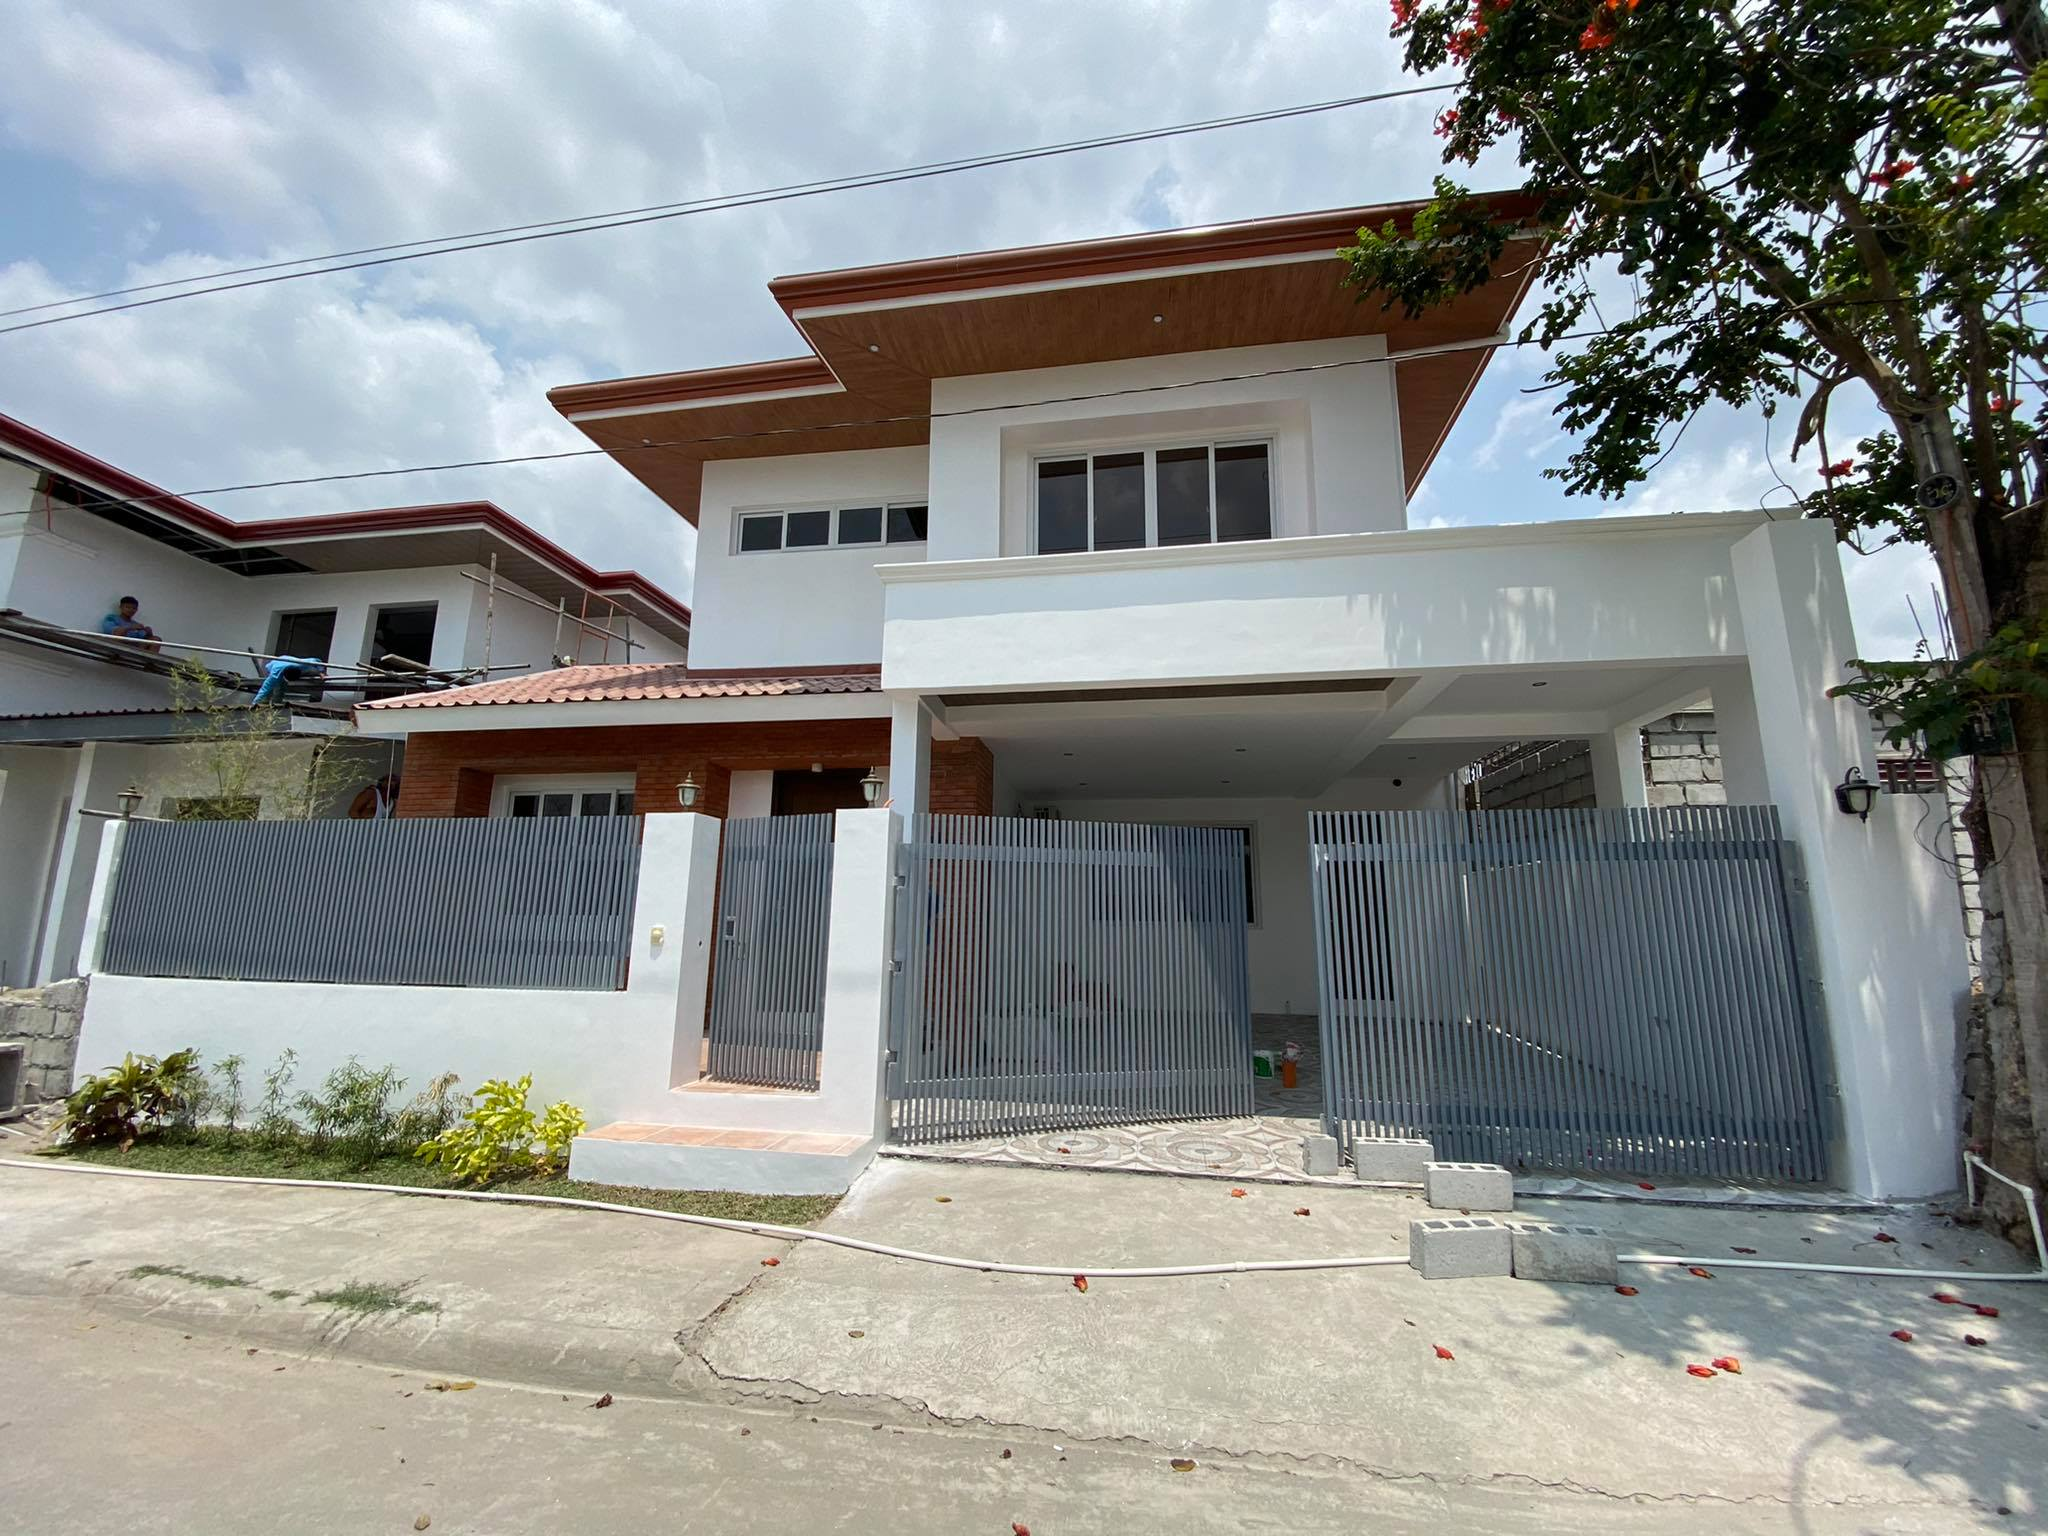 4 bedrooms house and lot in Telabastagan San Fernando for sale!